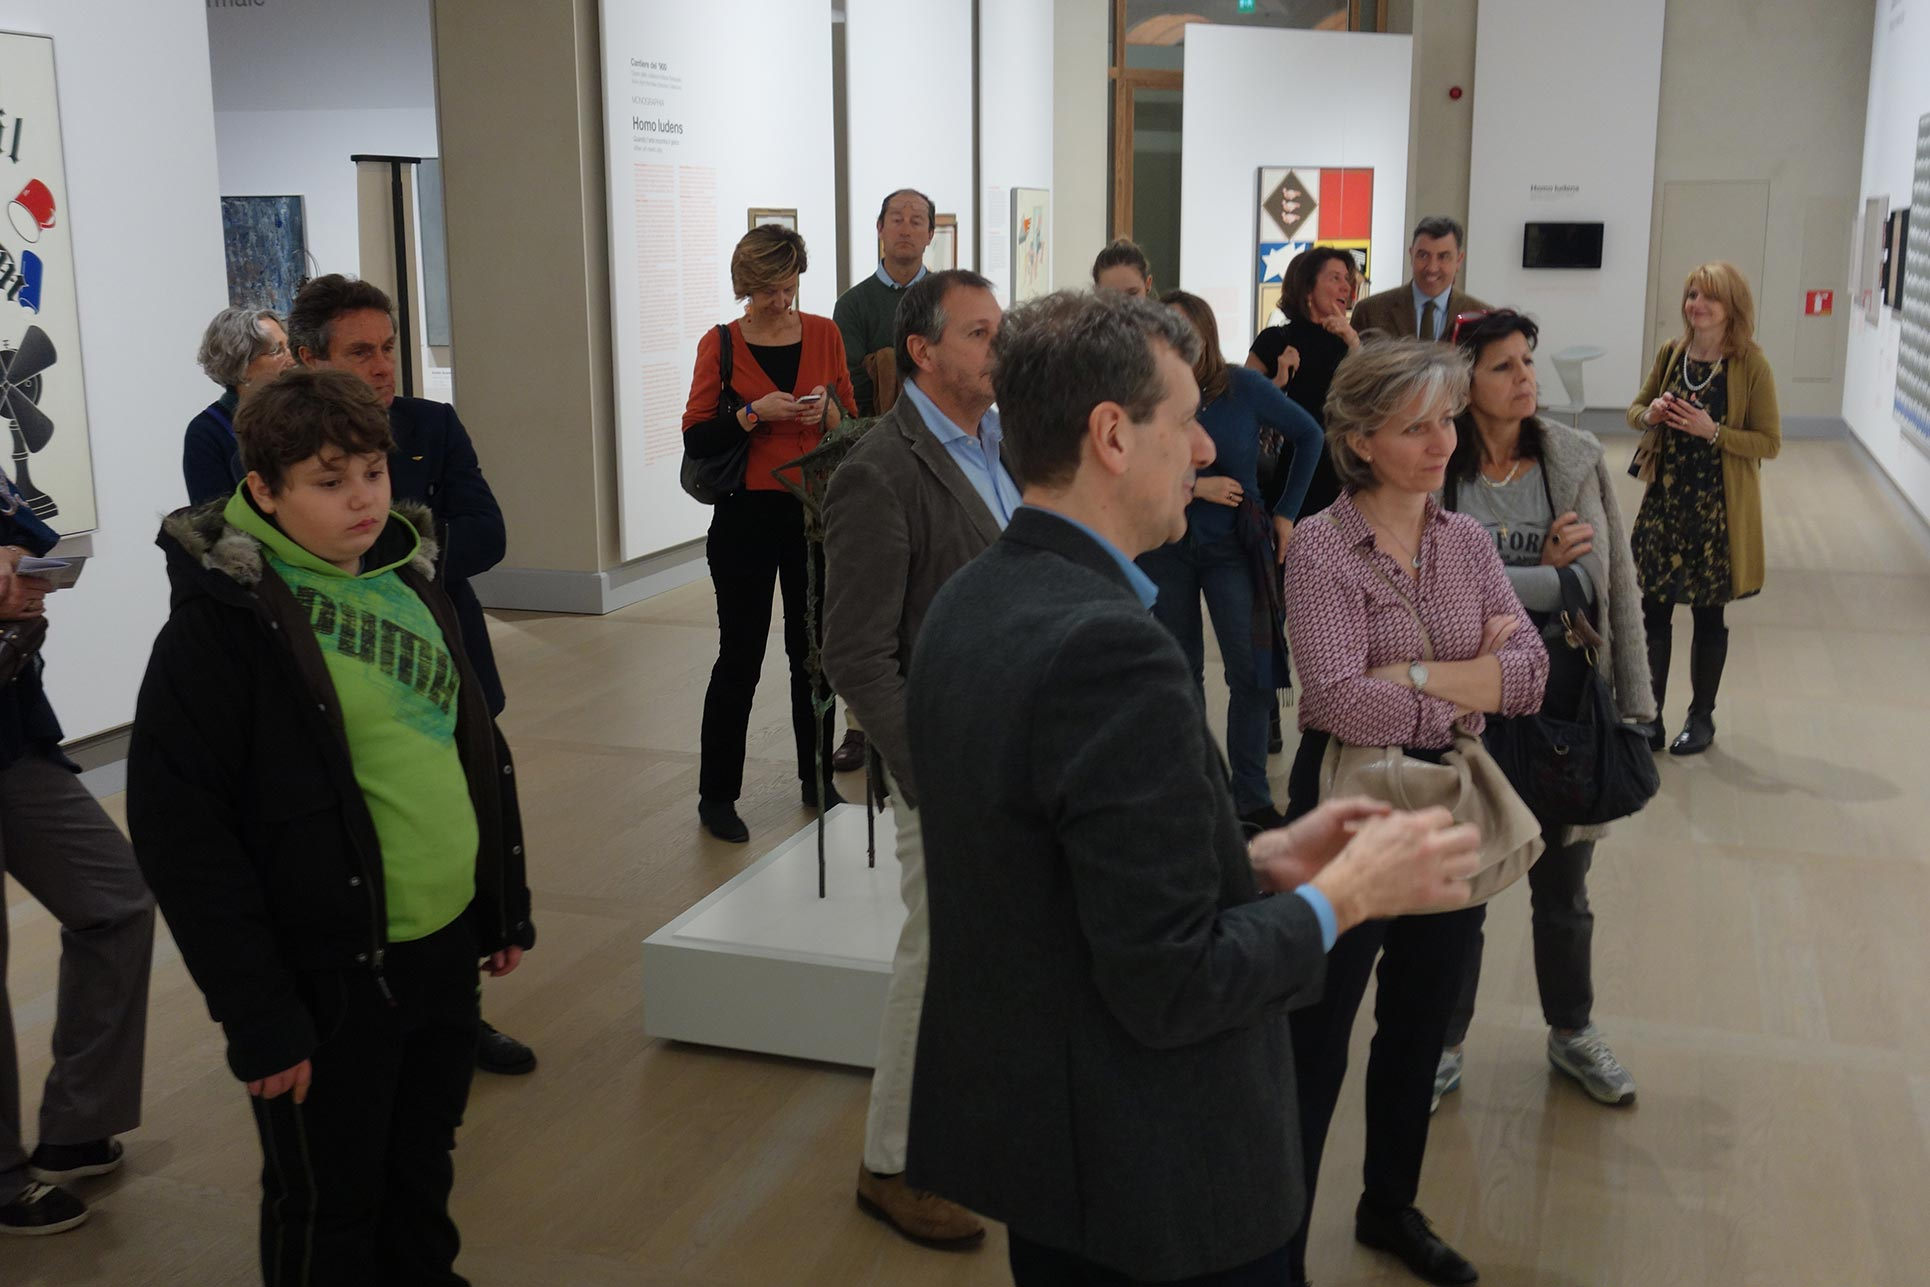 Guided tour with Francesco Tedeschi curator at